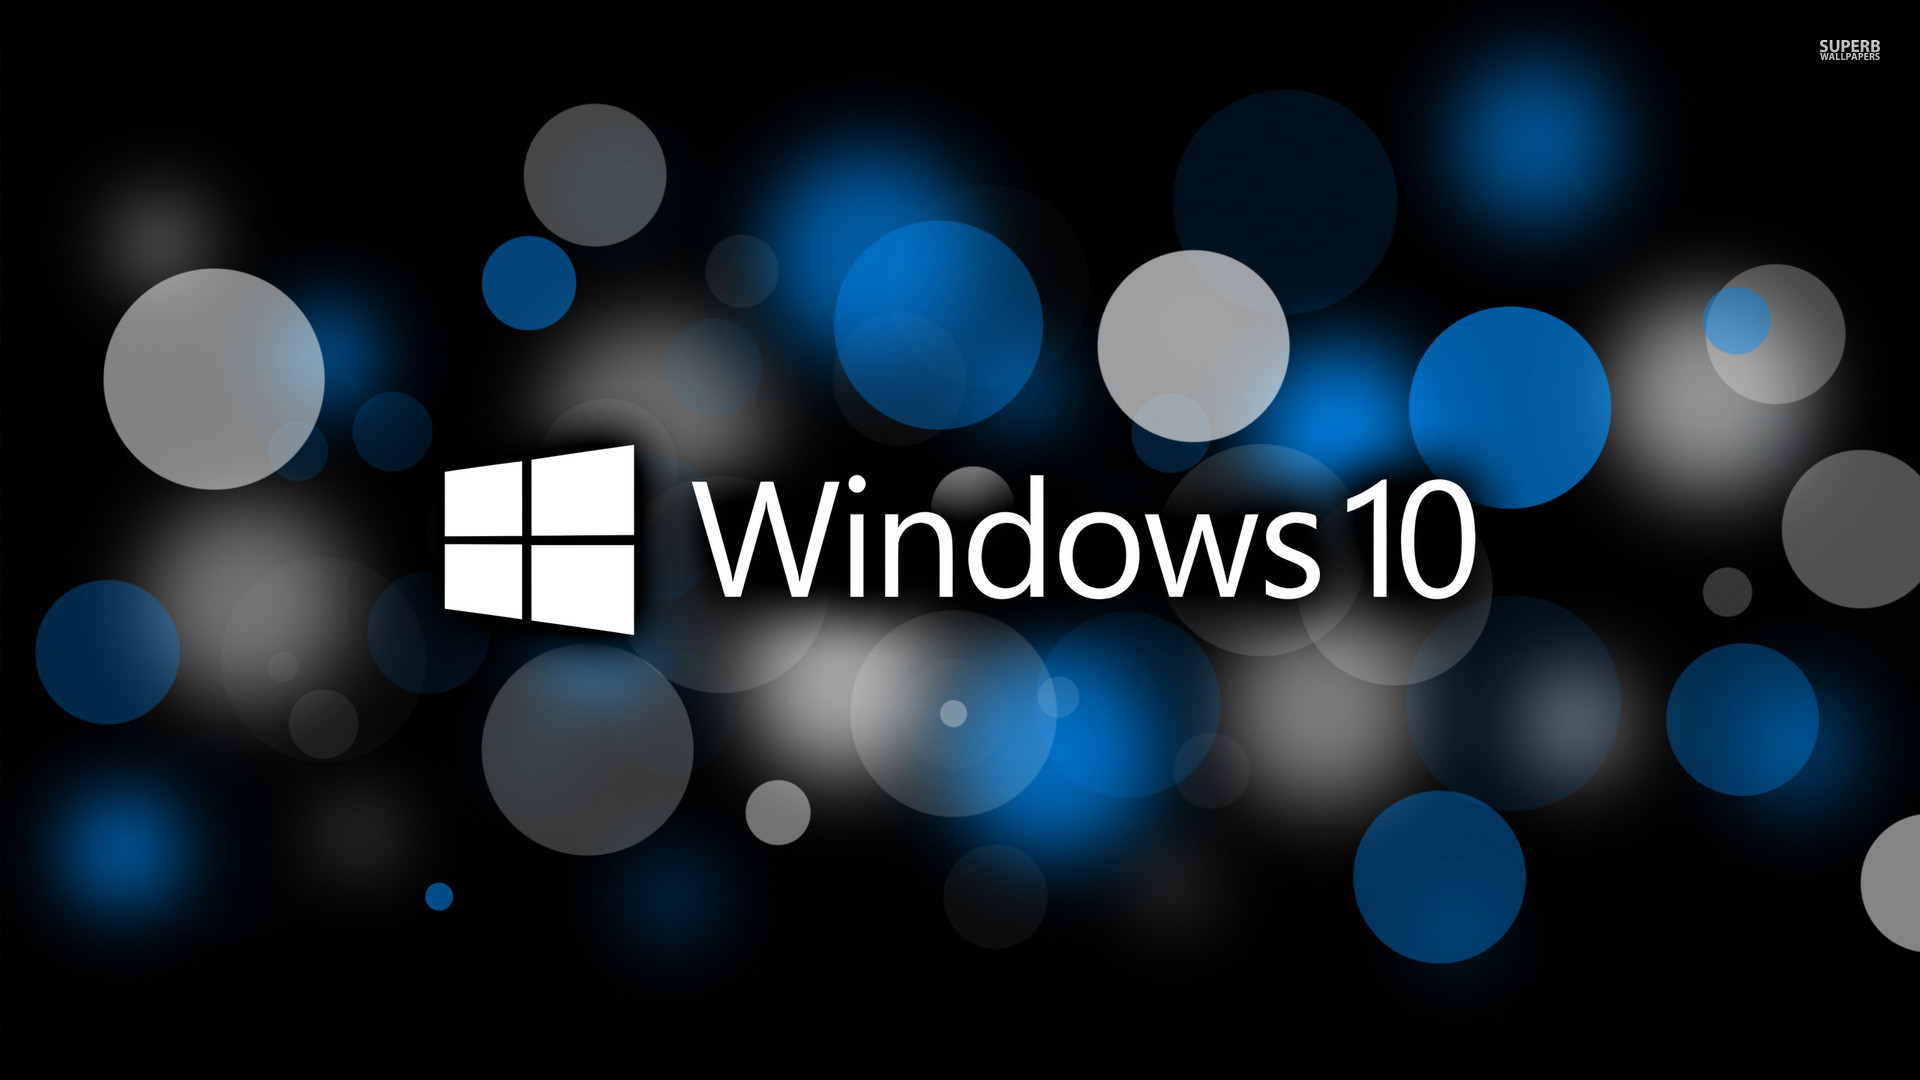 Res: 1920x1080, Windows 10 Images HD Wallpapers